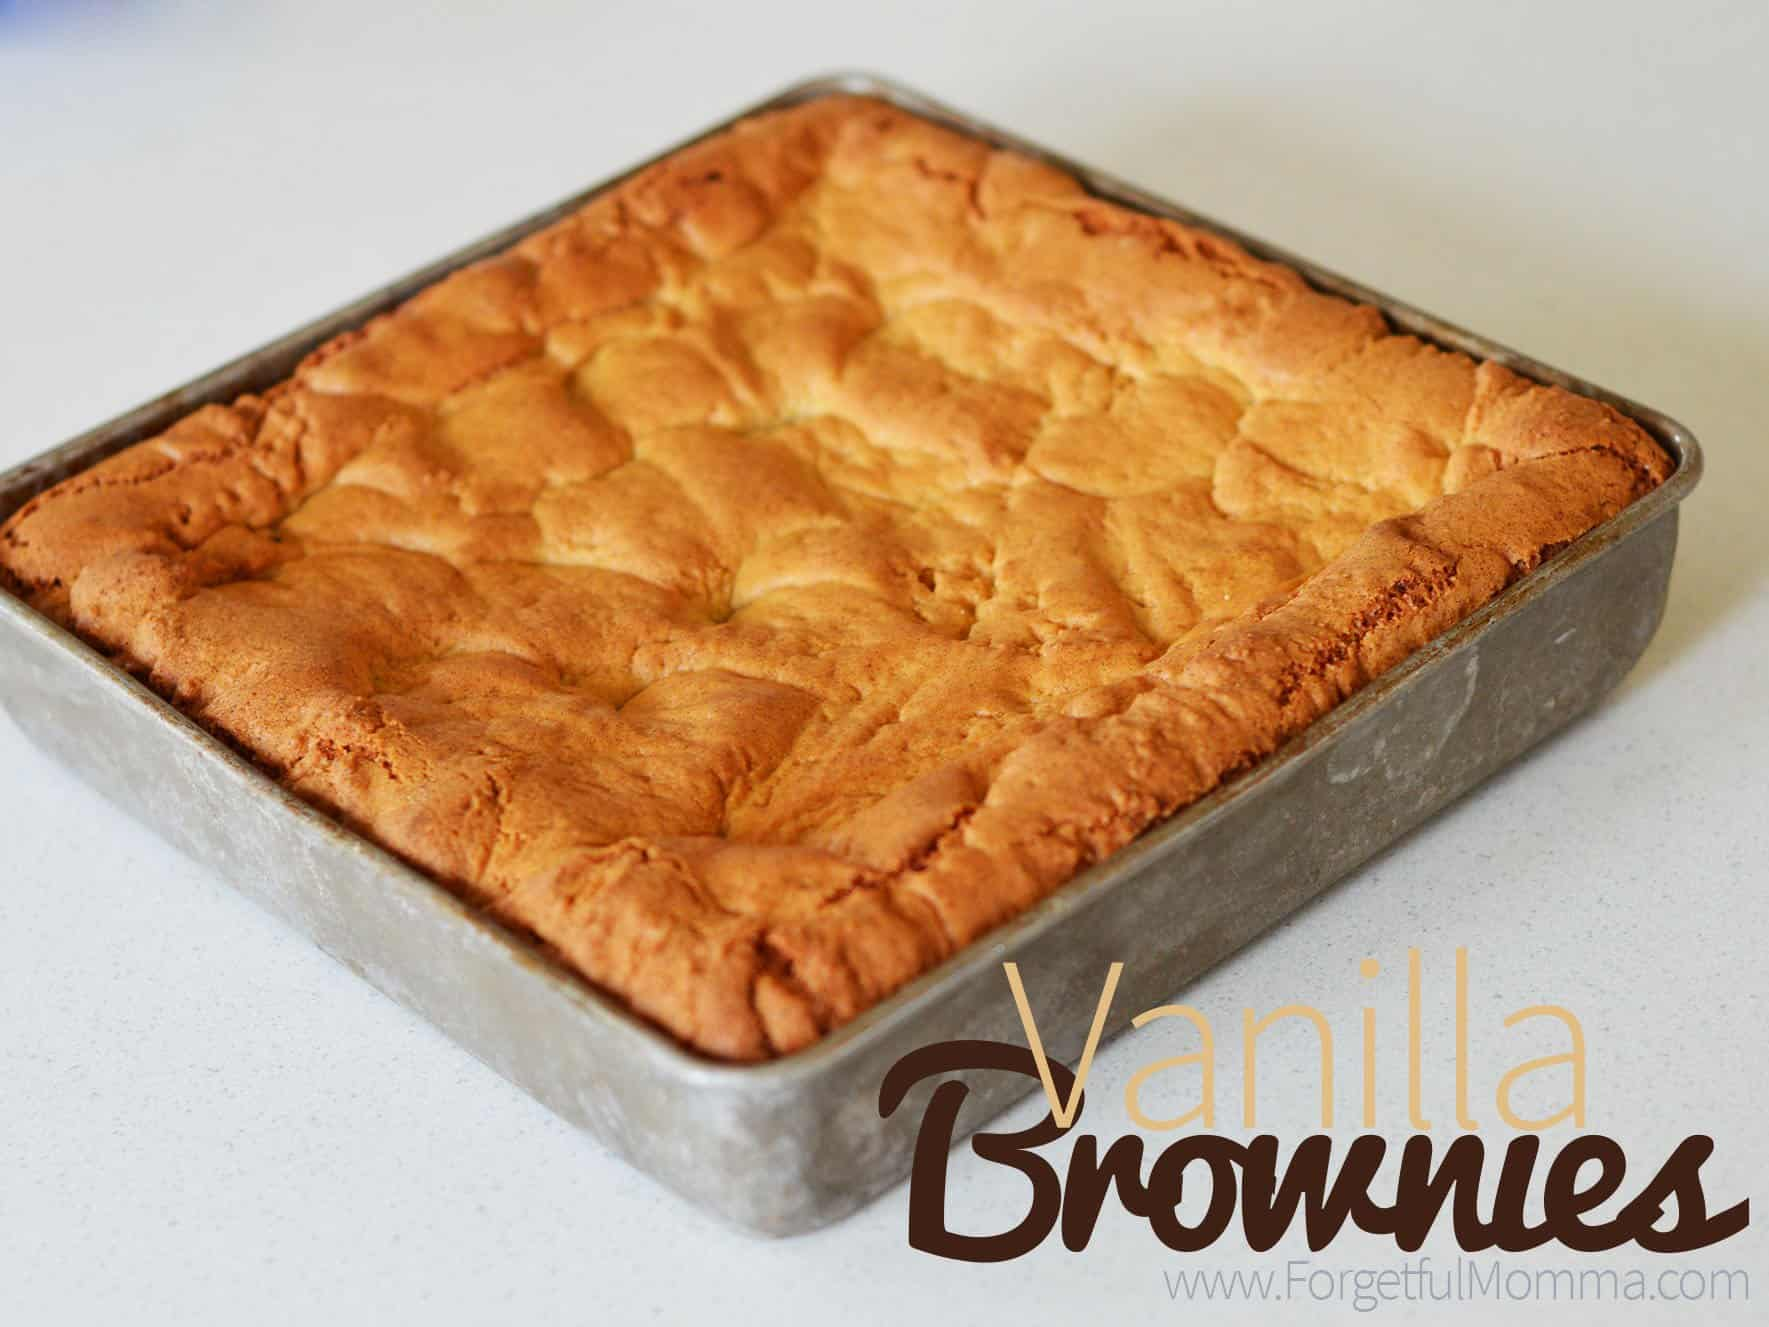 vanilla brownies